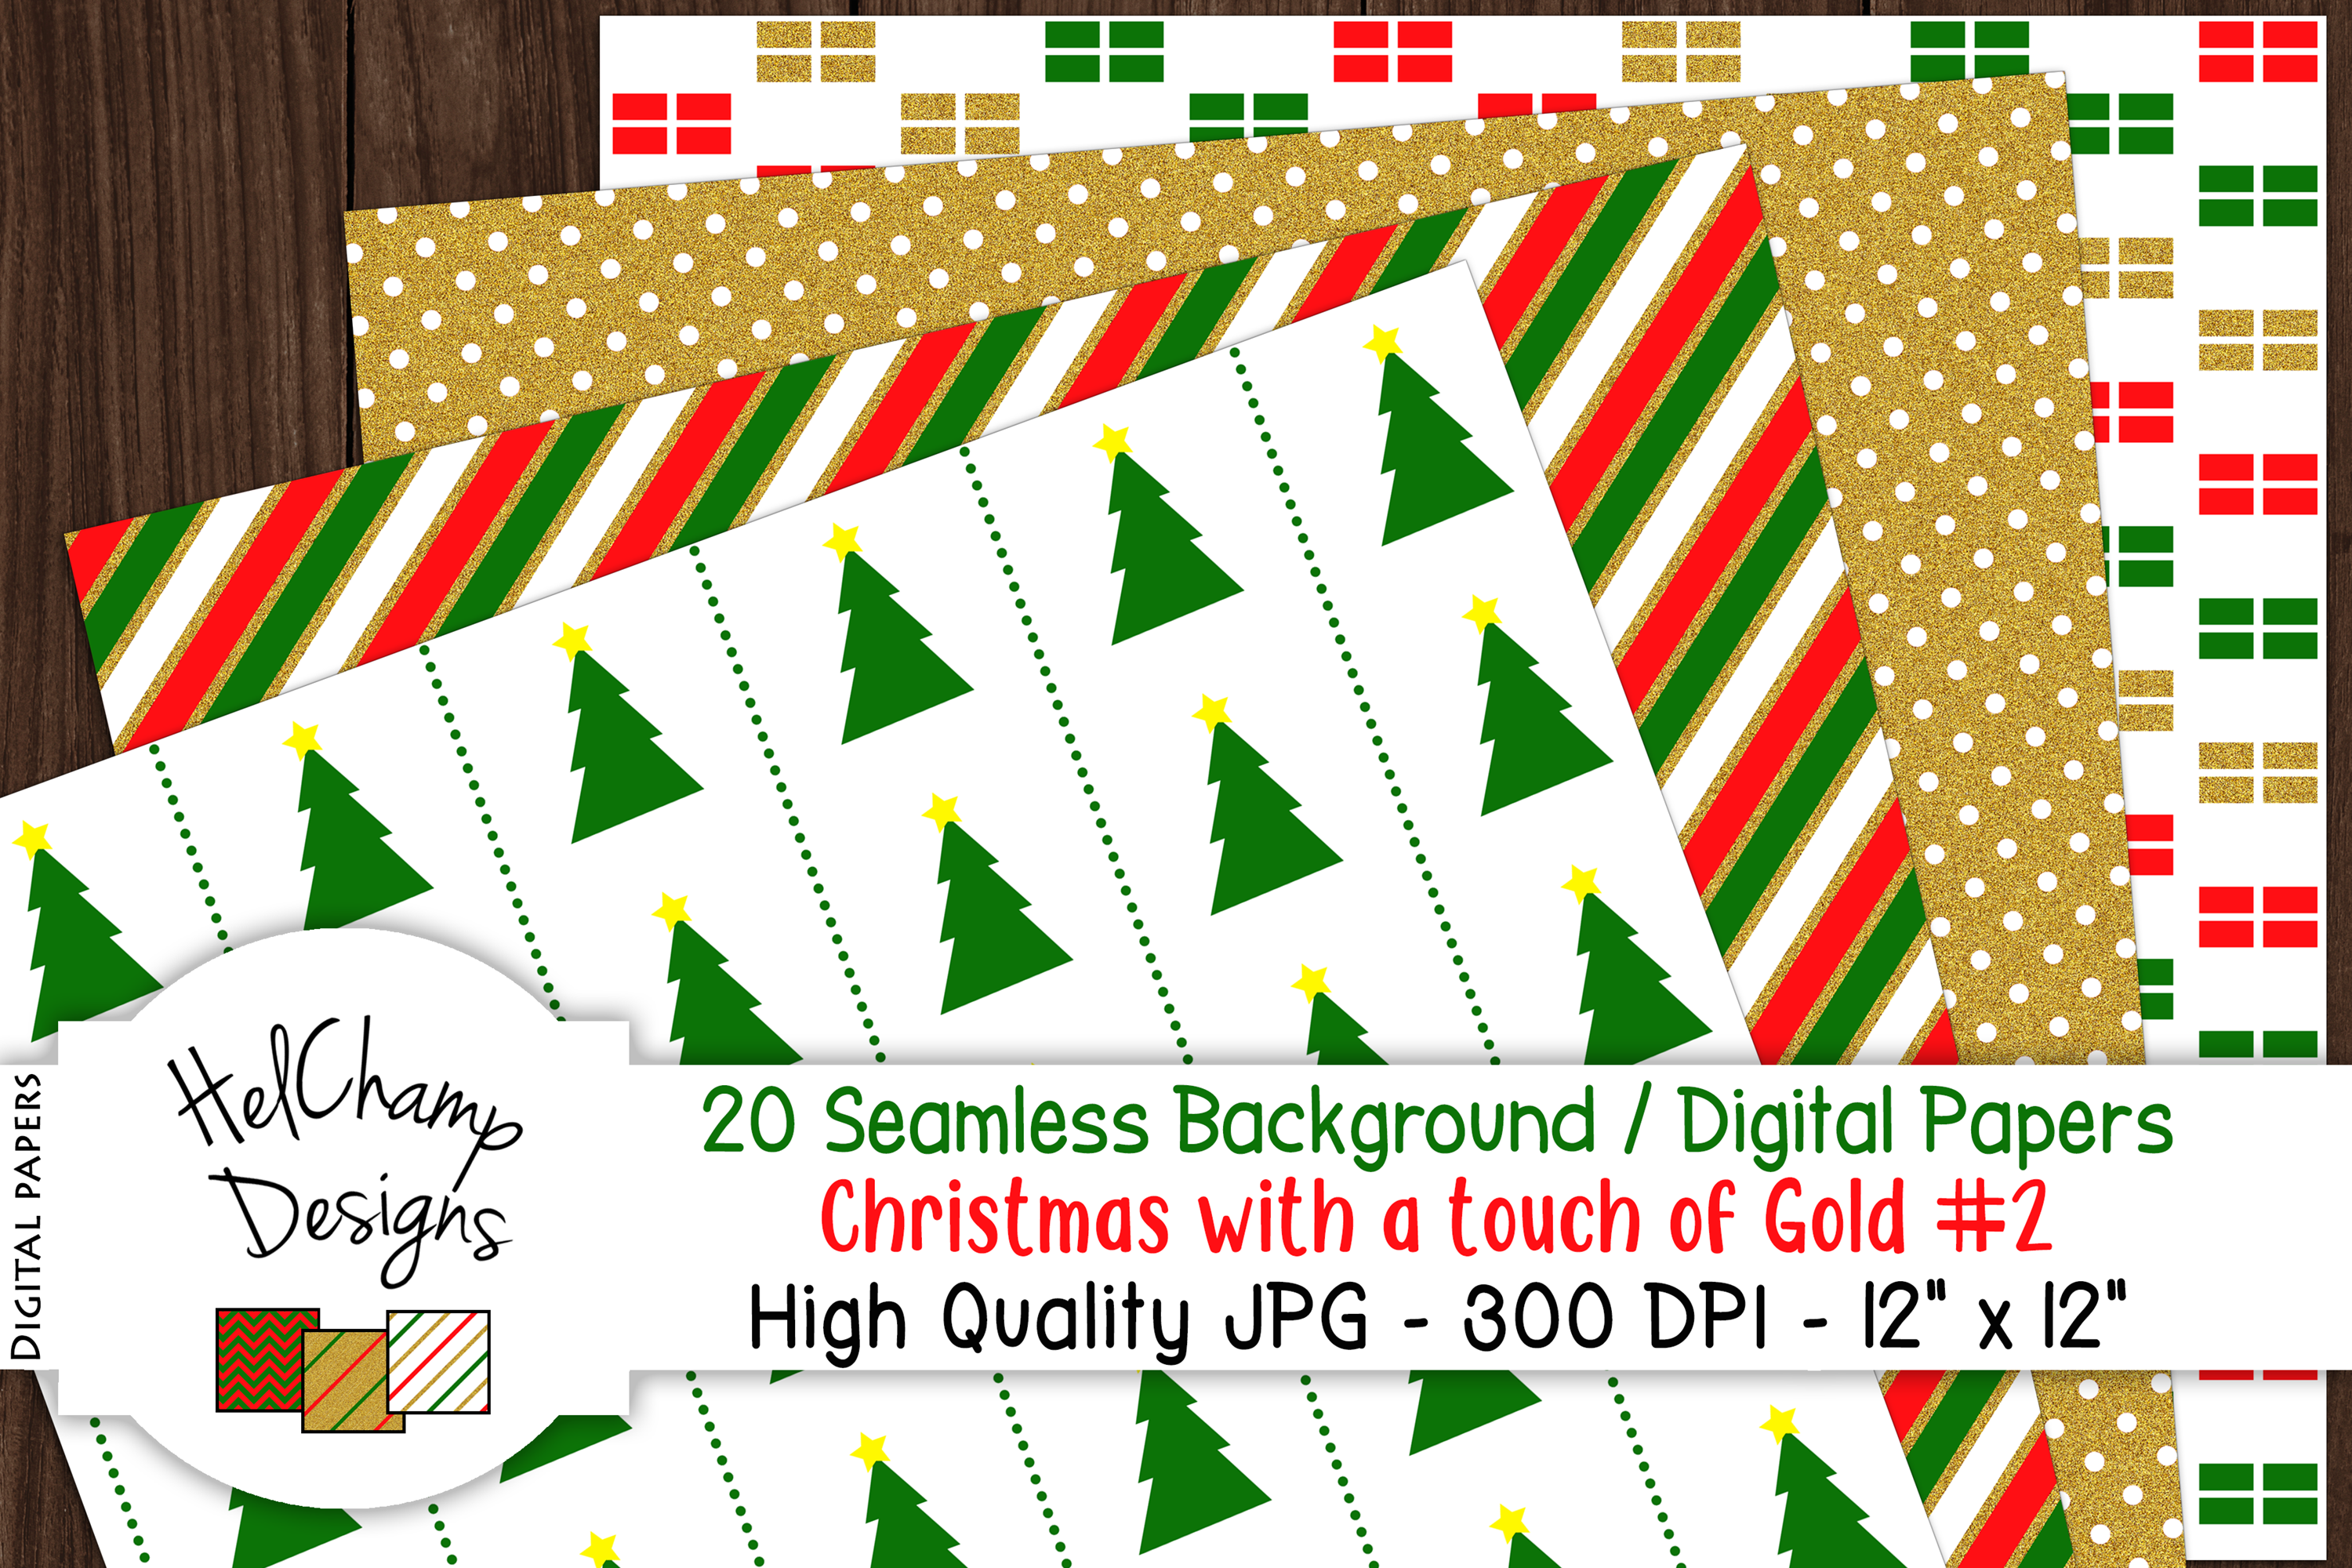 20 seamless Digital Papers - Christmas with Gold - HC007 example image 2